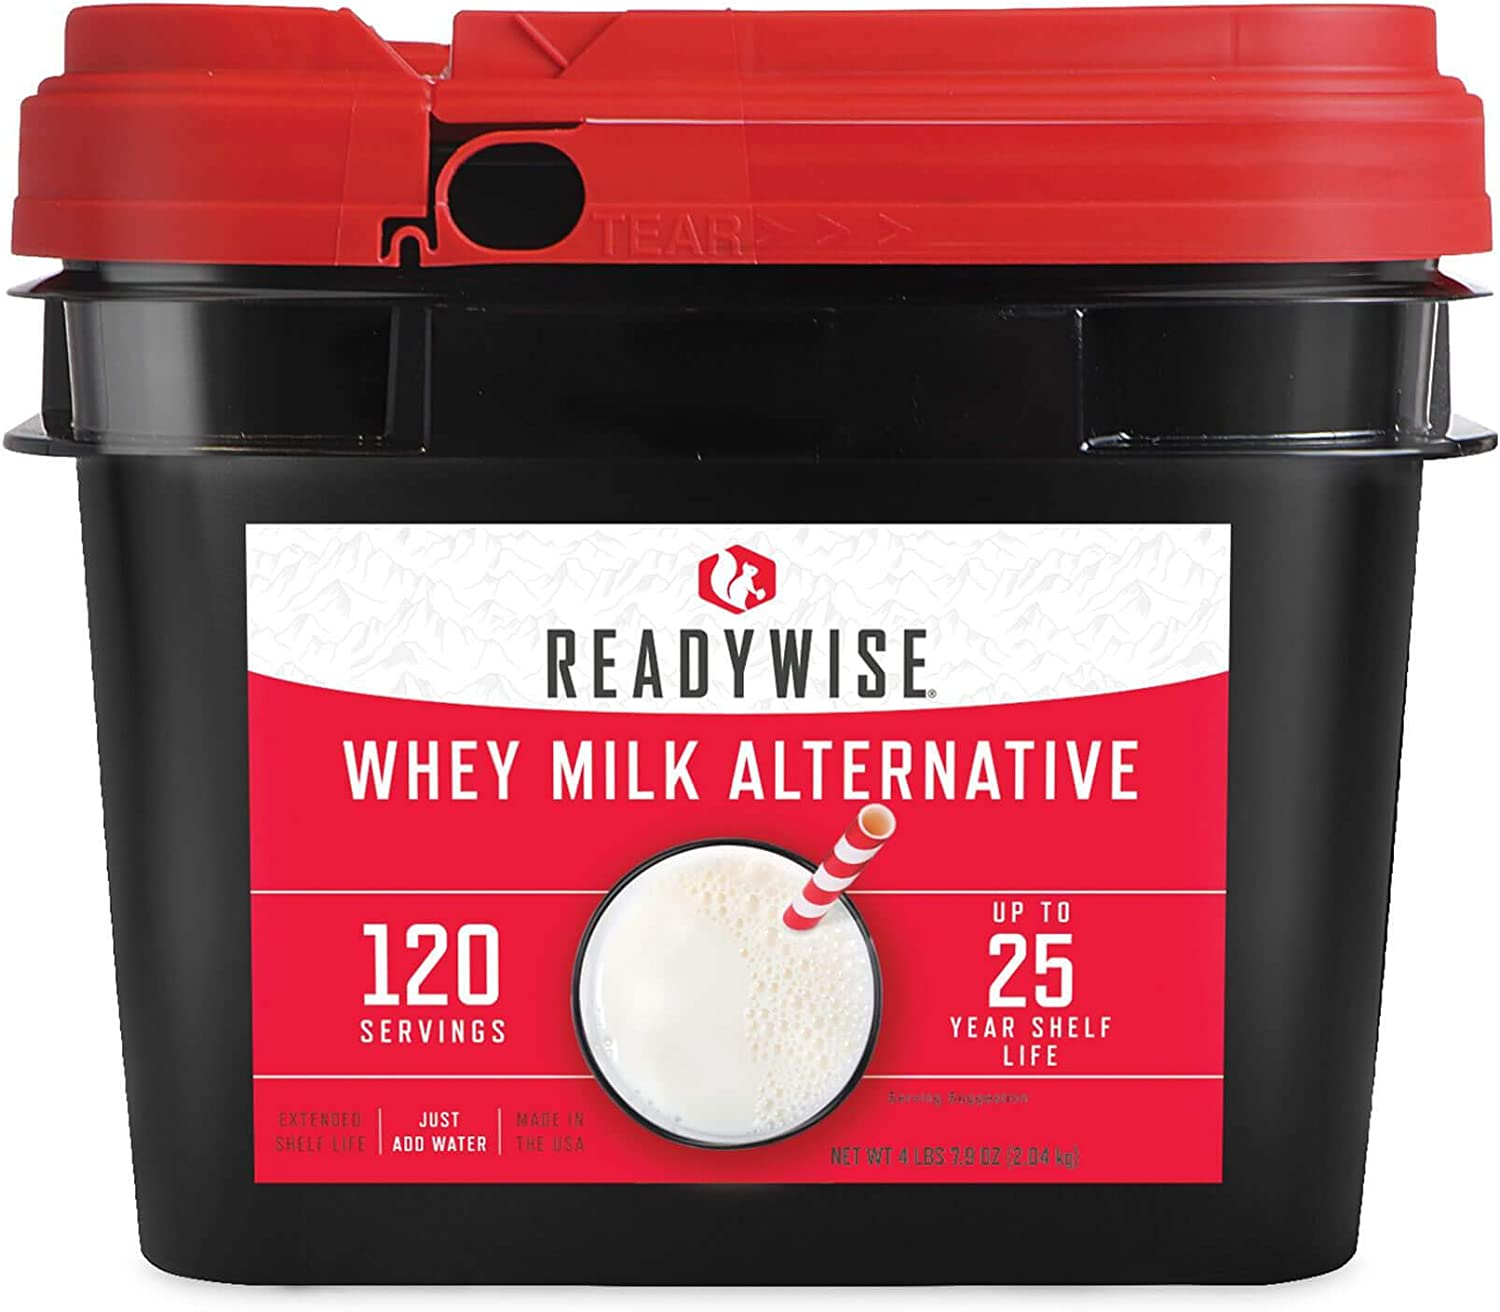 Ready Wise 120 Servings of Emergency Whey Milk Alternative | 20 Year Shelf-Life | Made in The USA